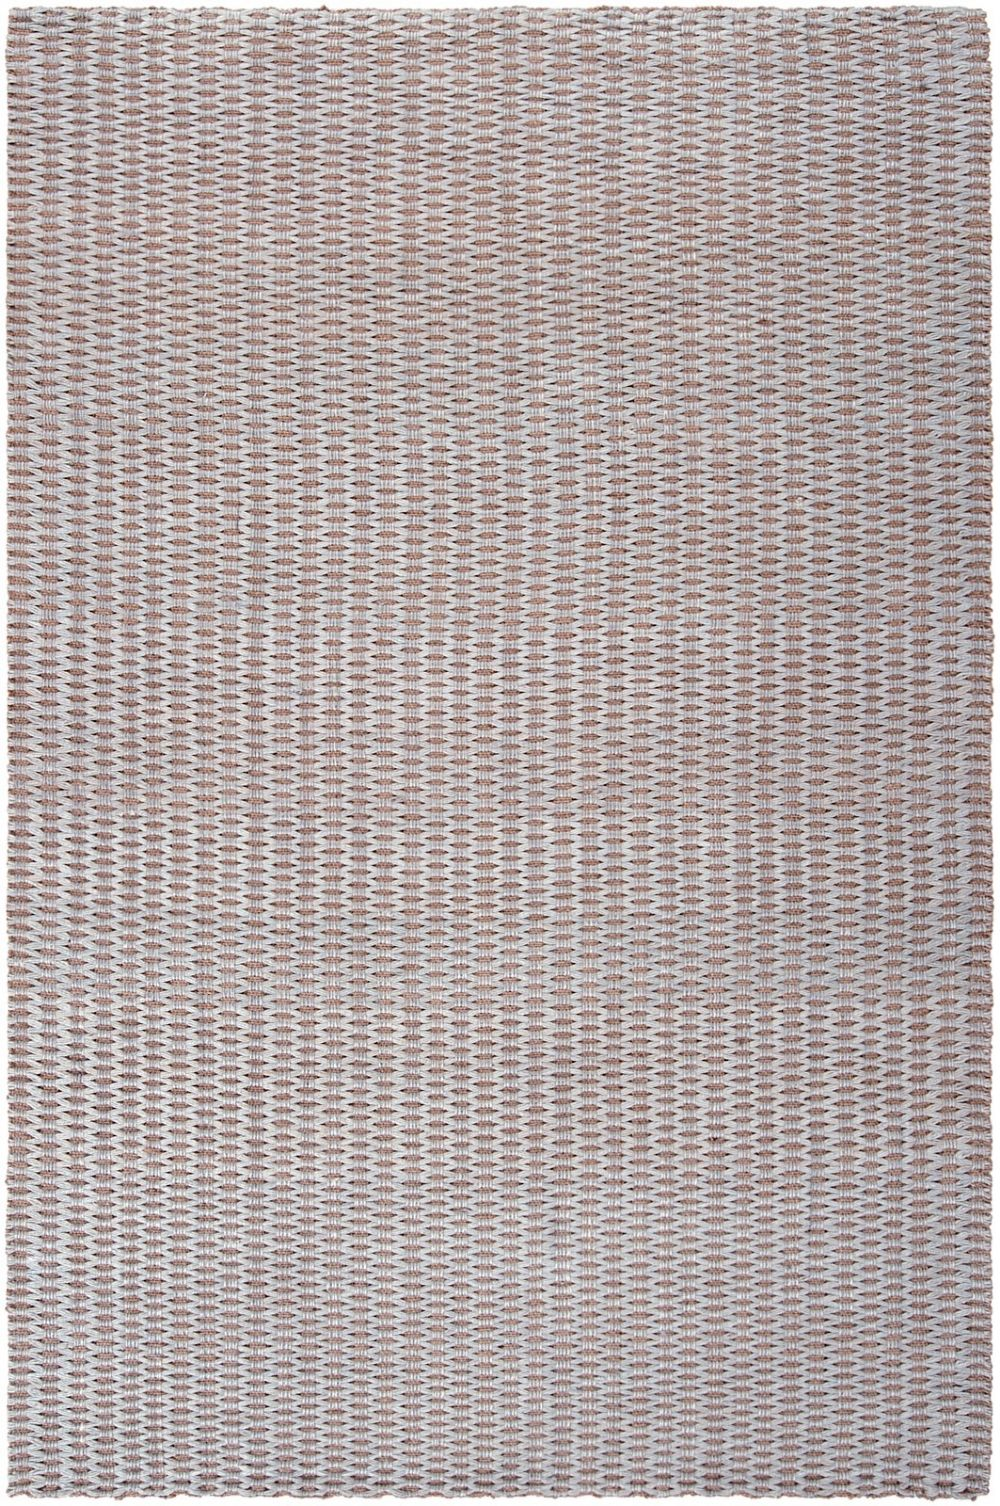 surya jute woven contemporary area rug collection